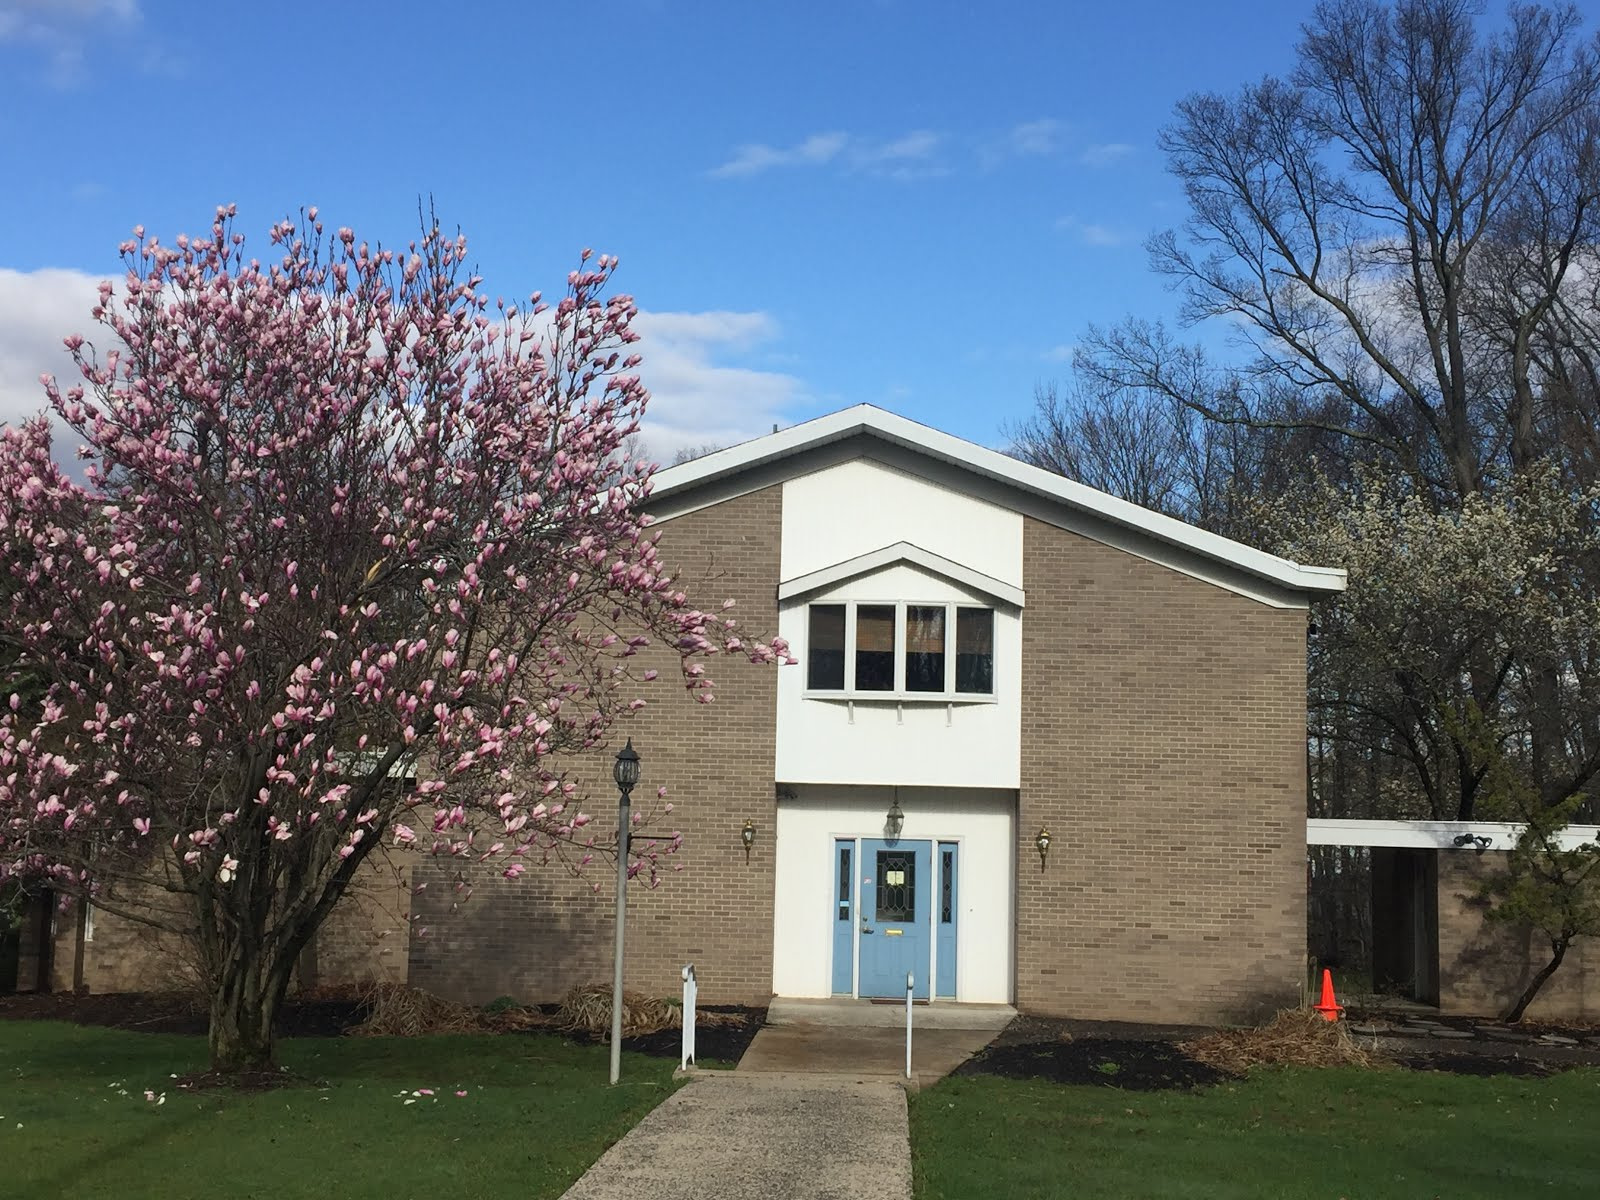 Berkeley Heights Public Library